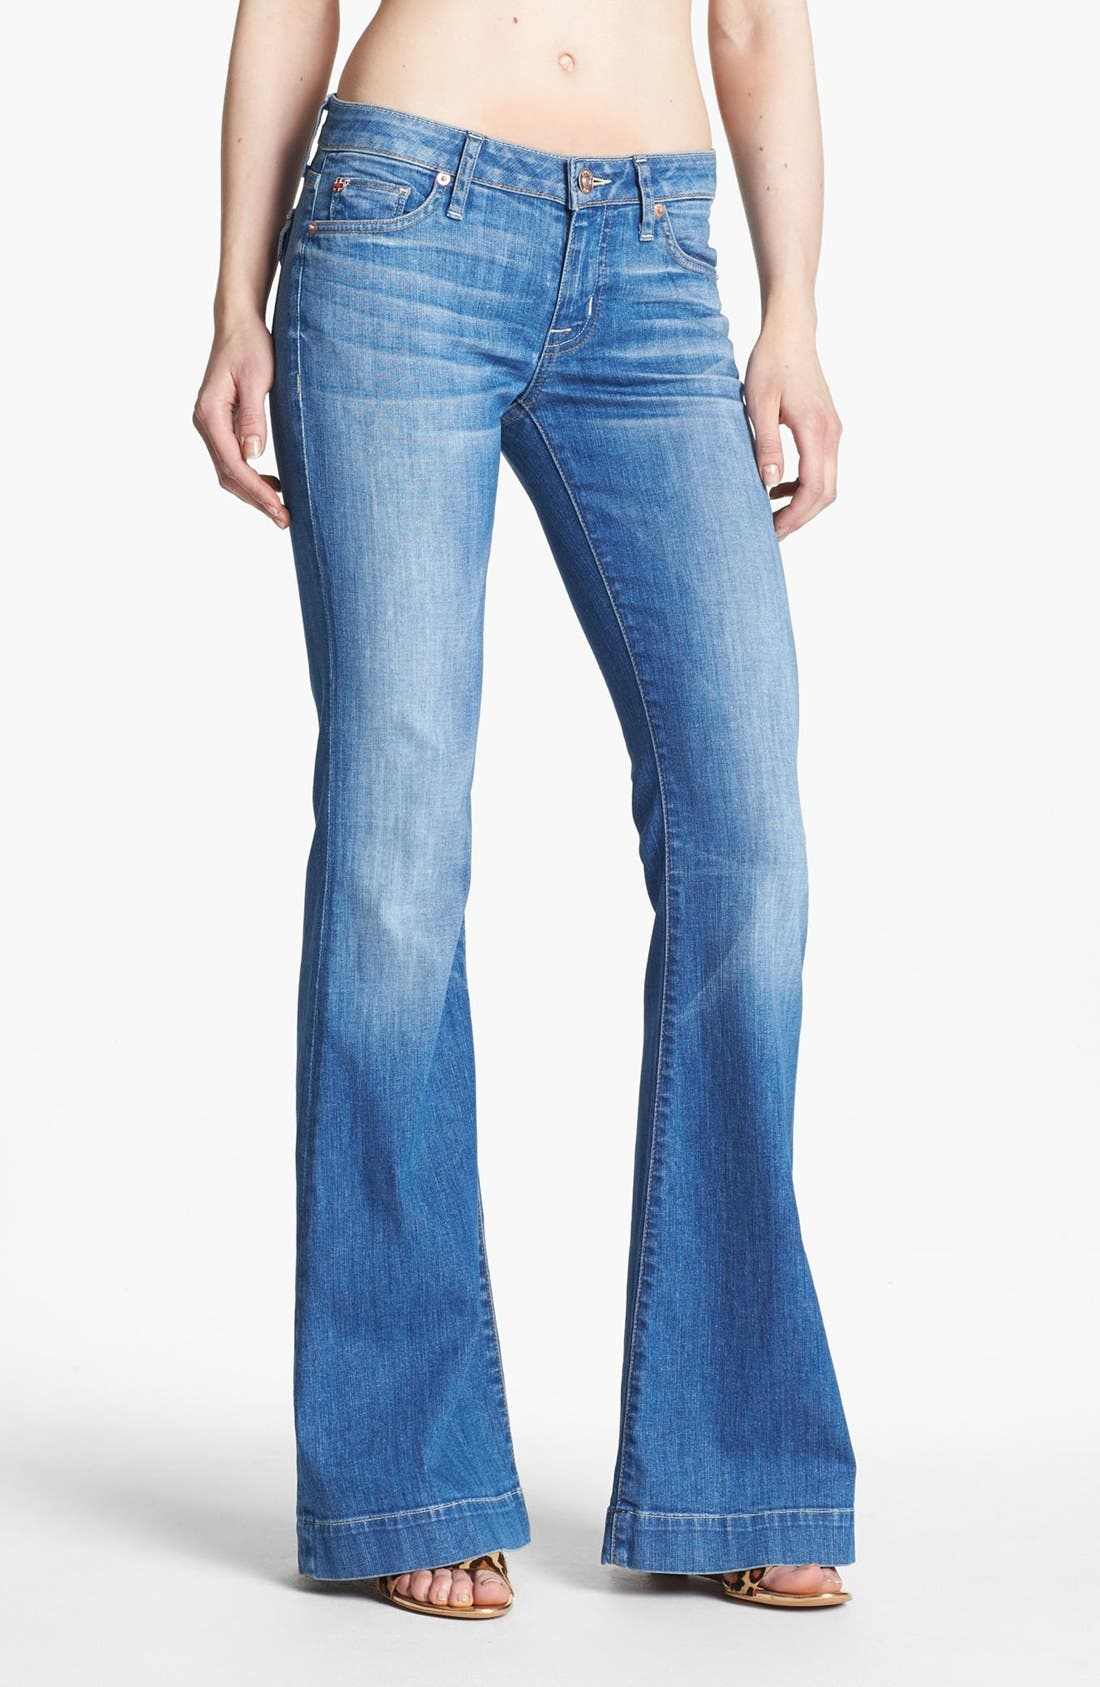 Main Image - Hudson Jeans 'Ferris' Flare Leg Jeans (Polly)